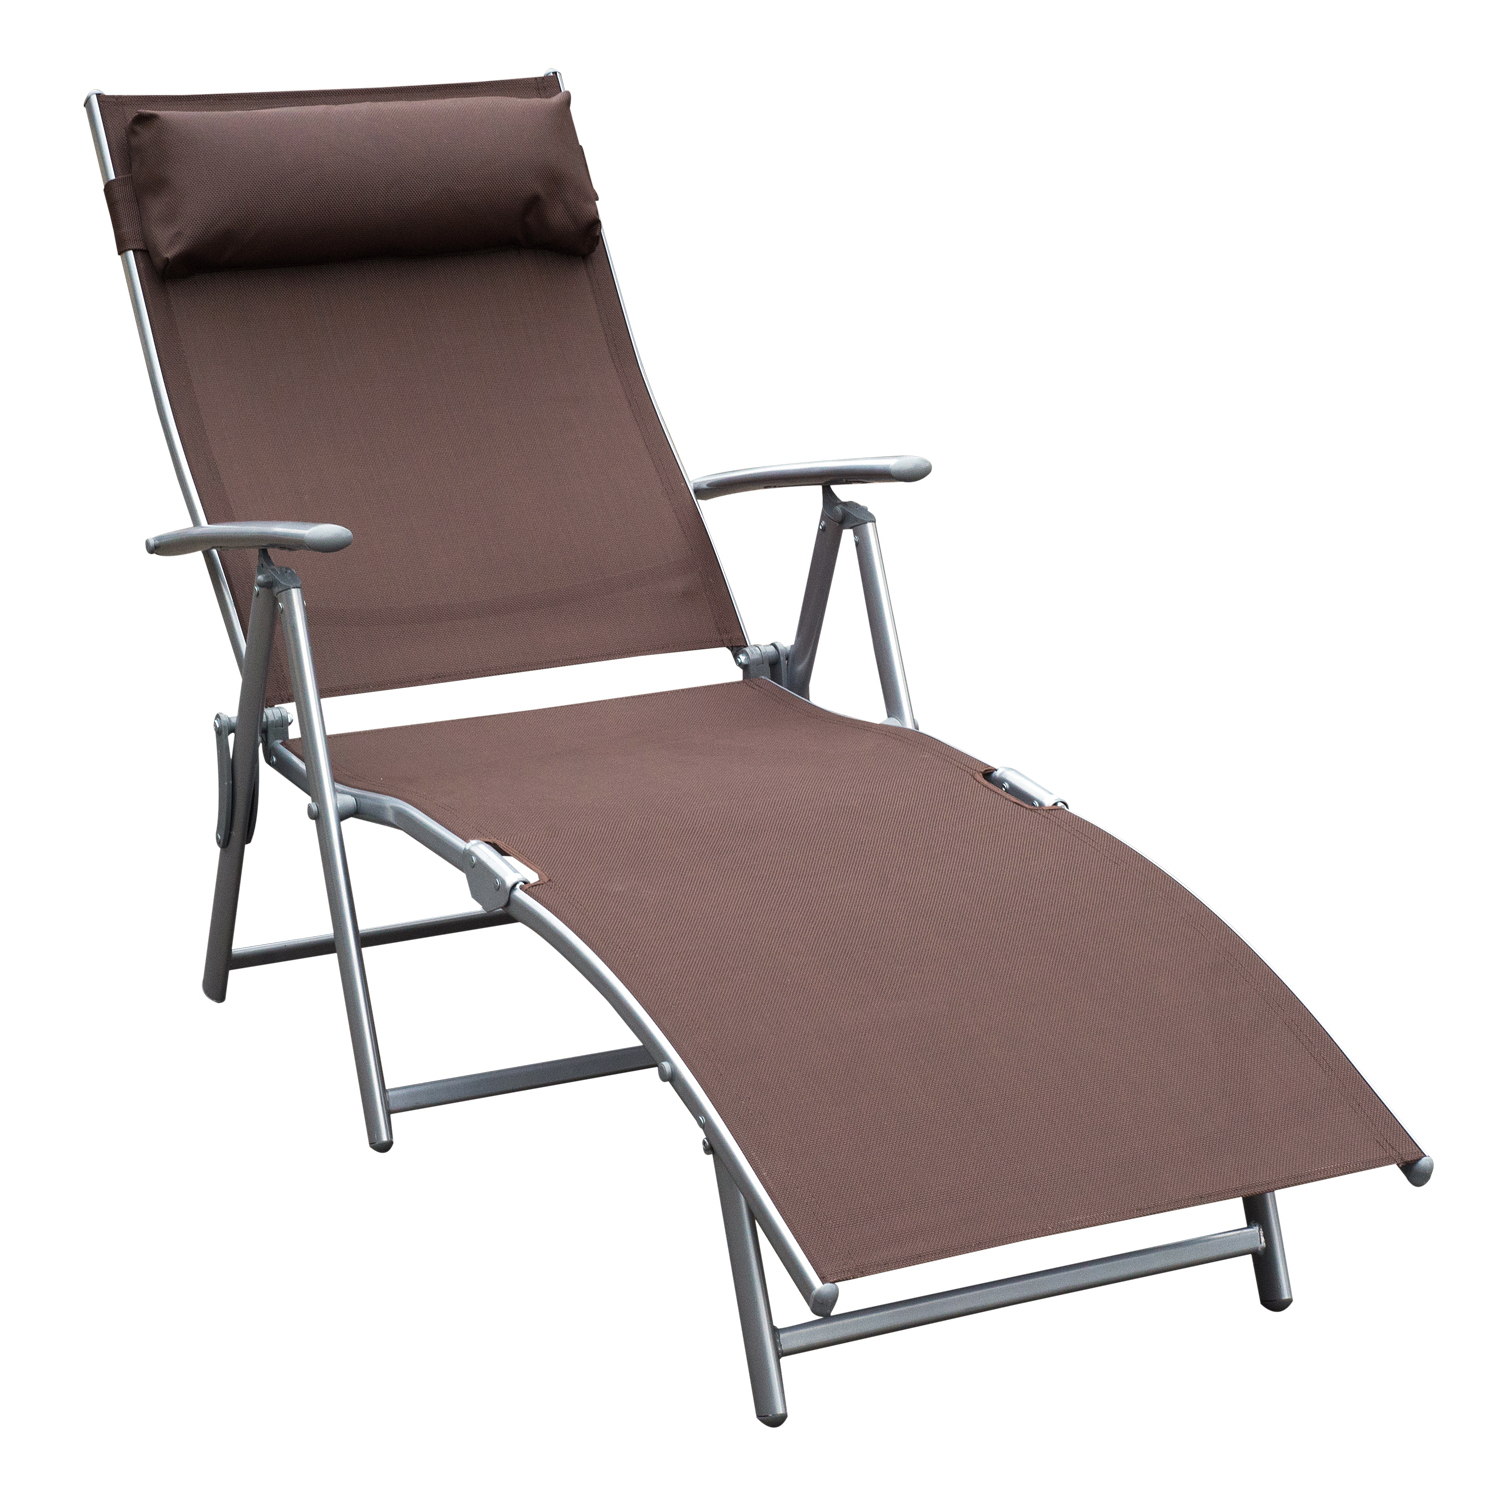 Adjustable Sling Fabric Patio Chaise Lounges With Well Known Outsunny Sling Fabric Folding Patio Reclining Outdoor Deck Chaise Lounge  Chair With Cushion – Brown (View 12 of 25)